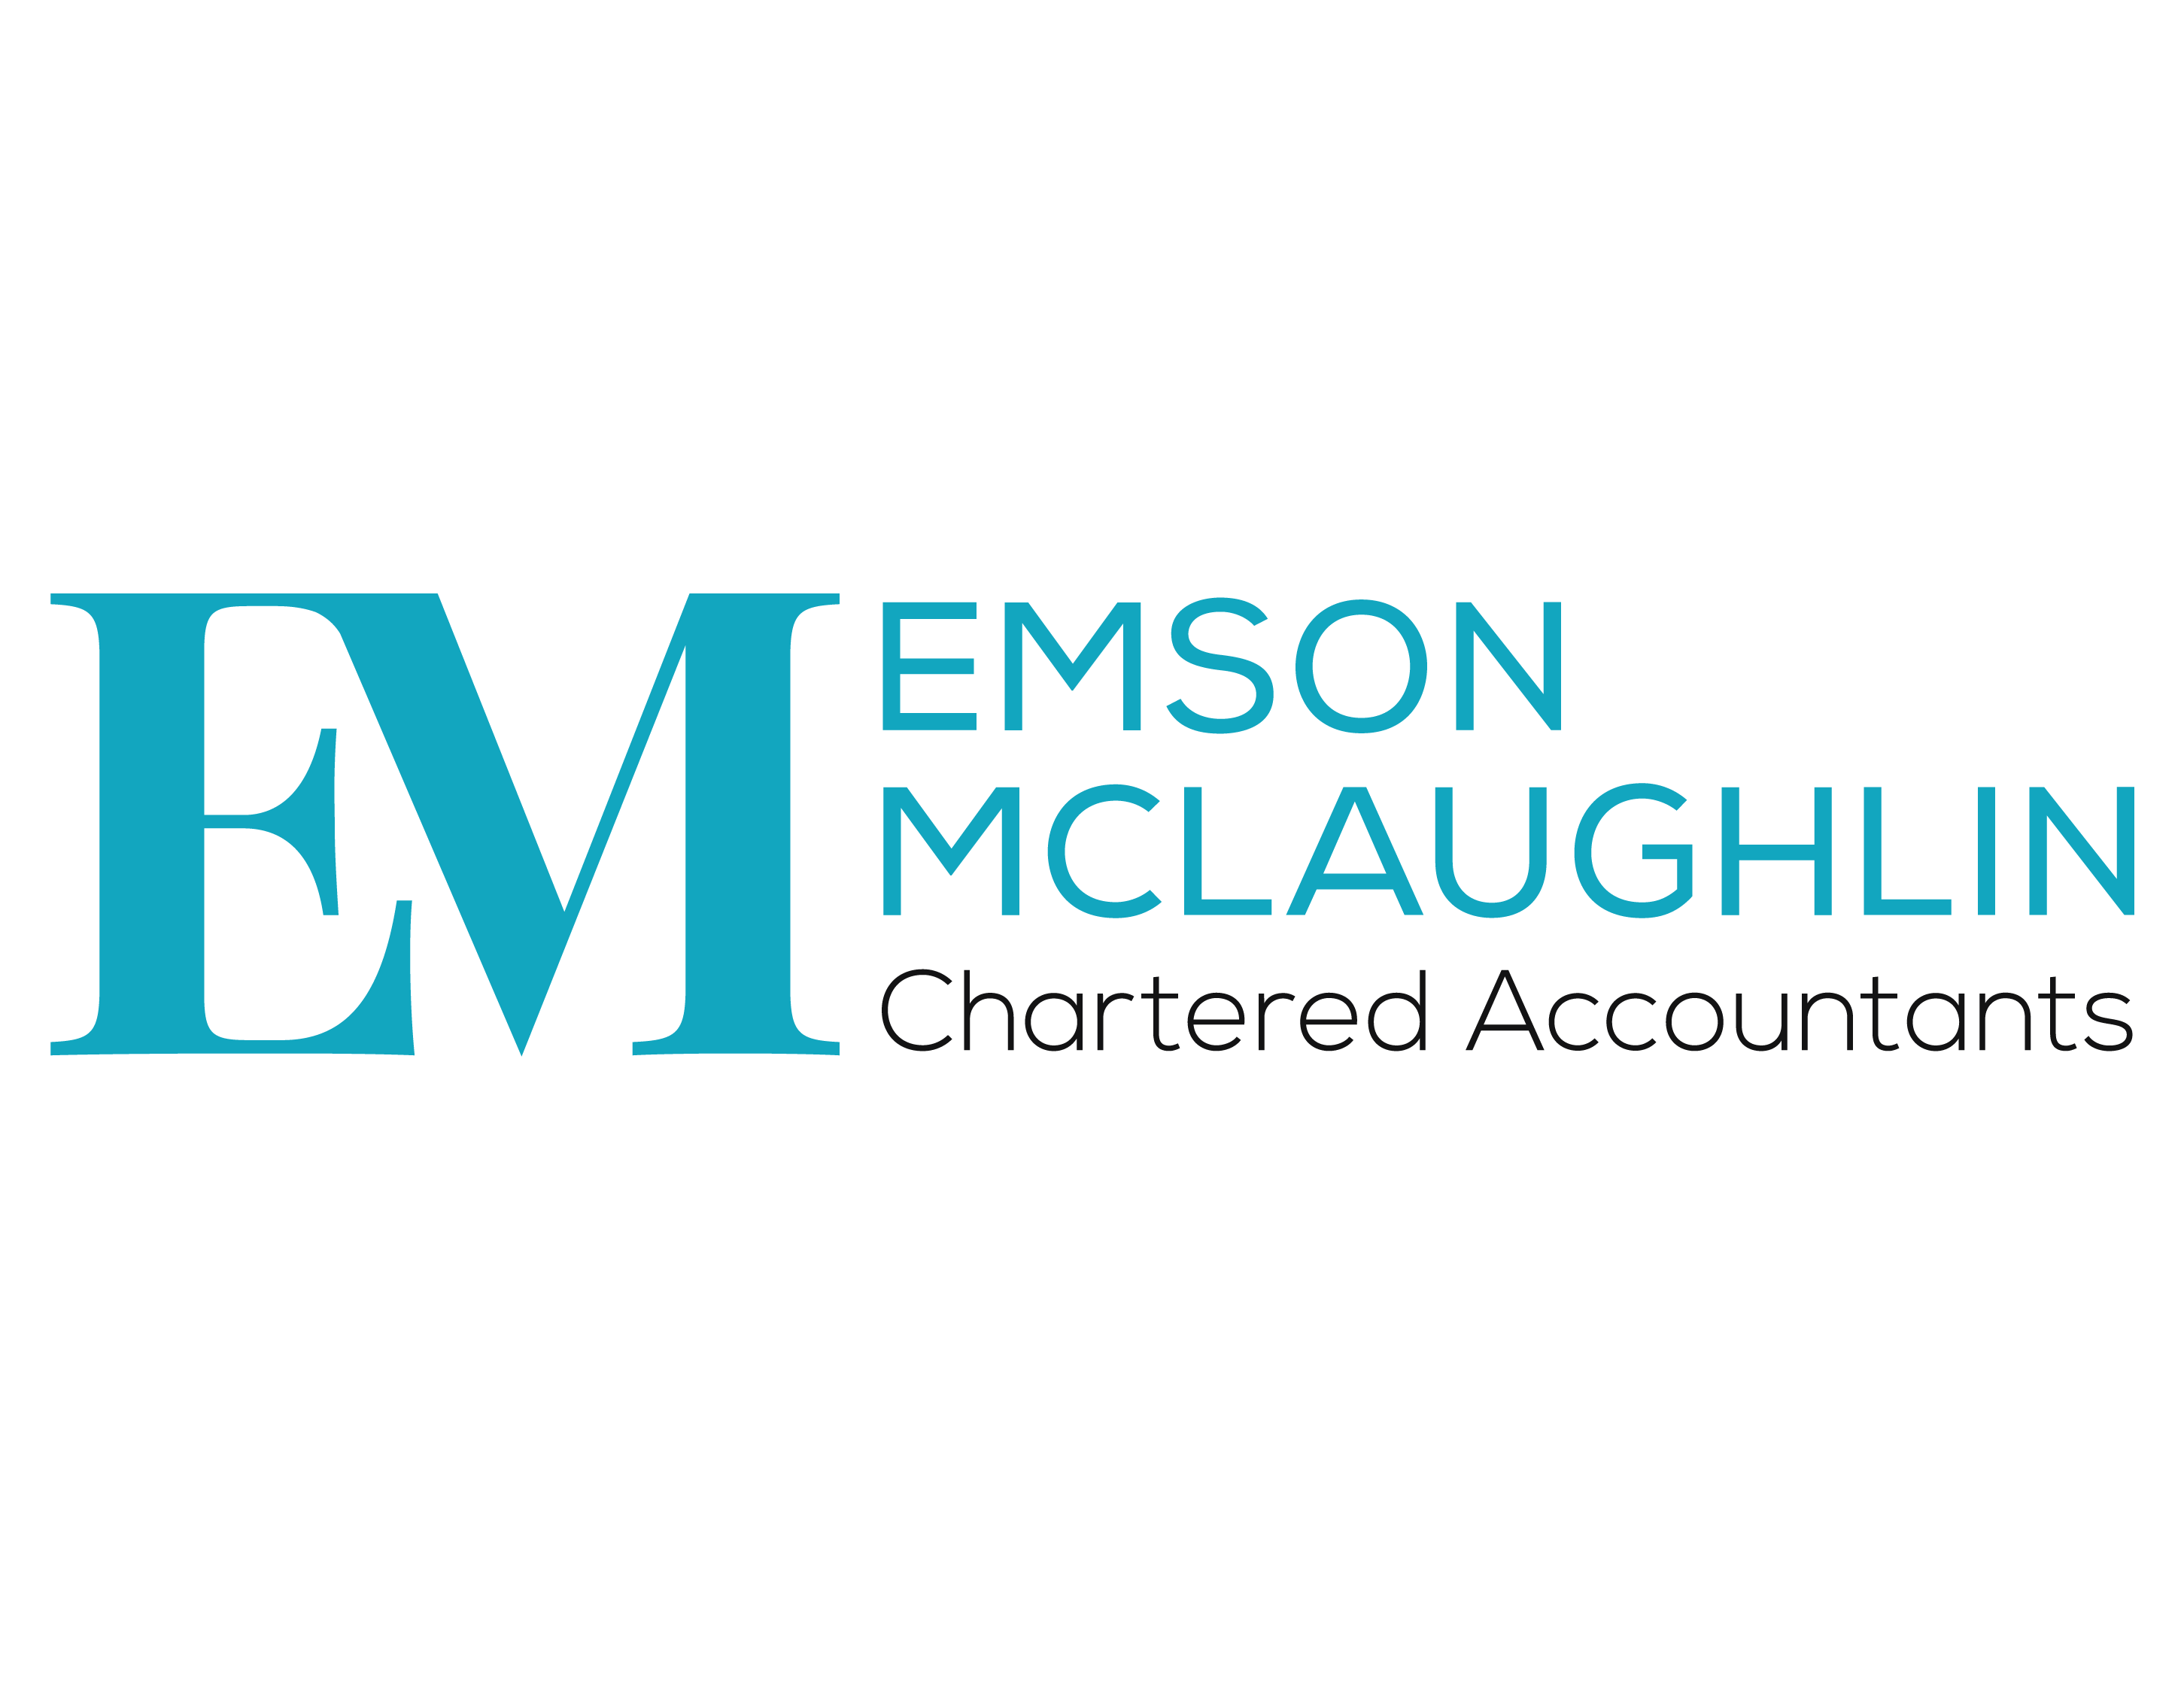 EMSON MCLAUGHLIN LIMITED